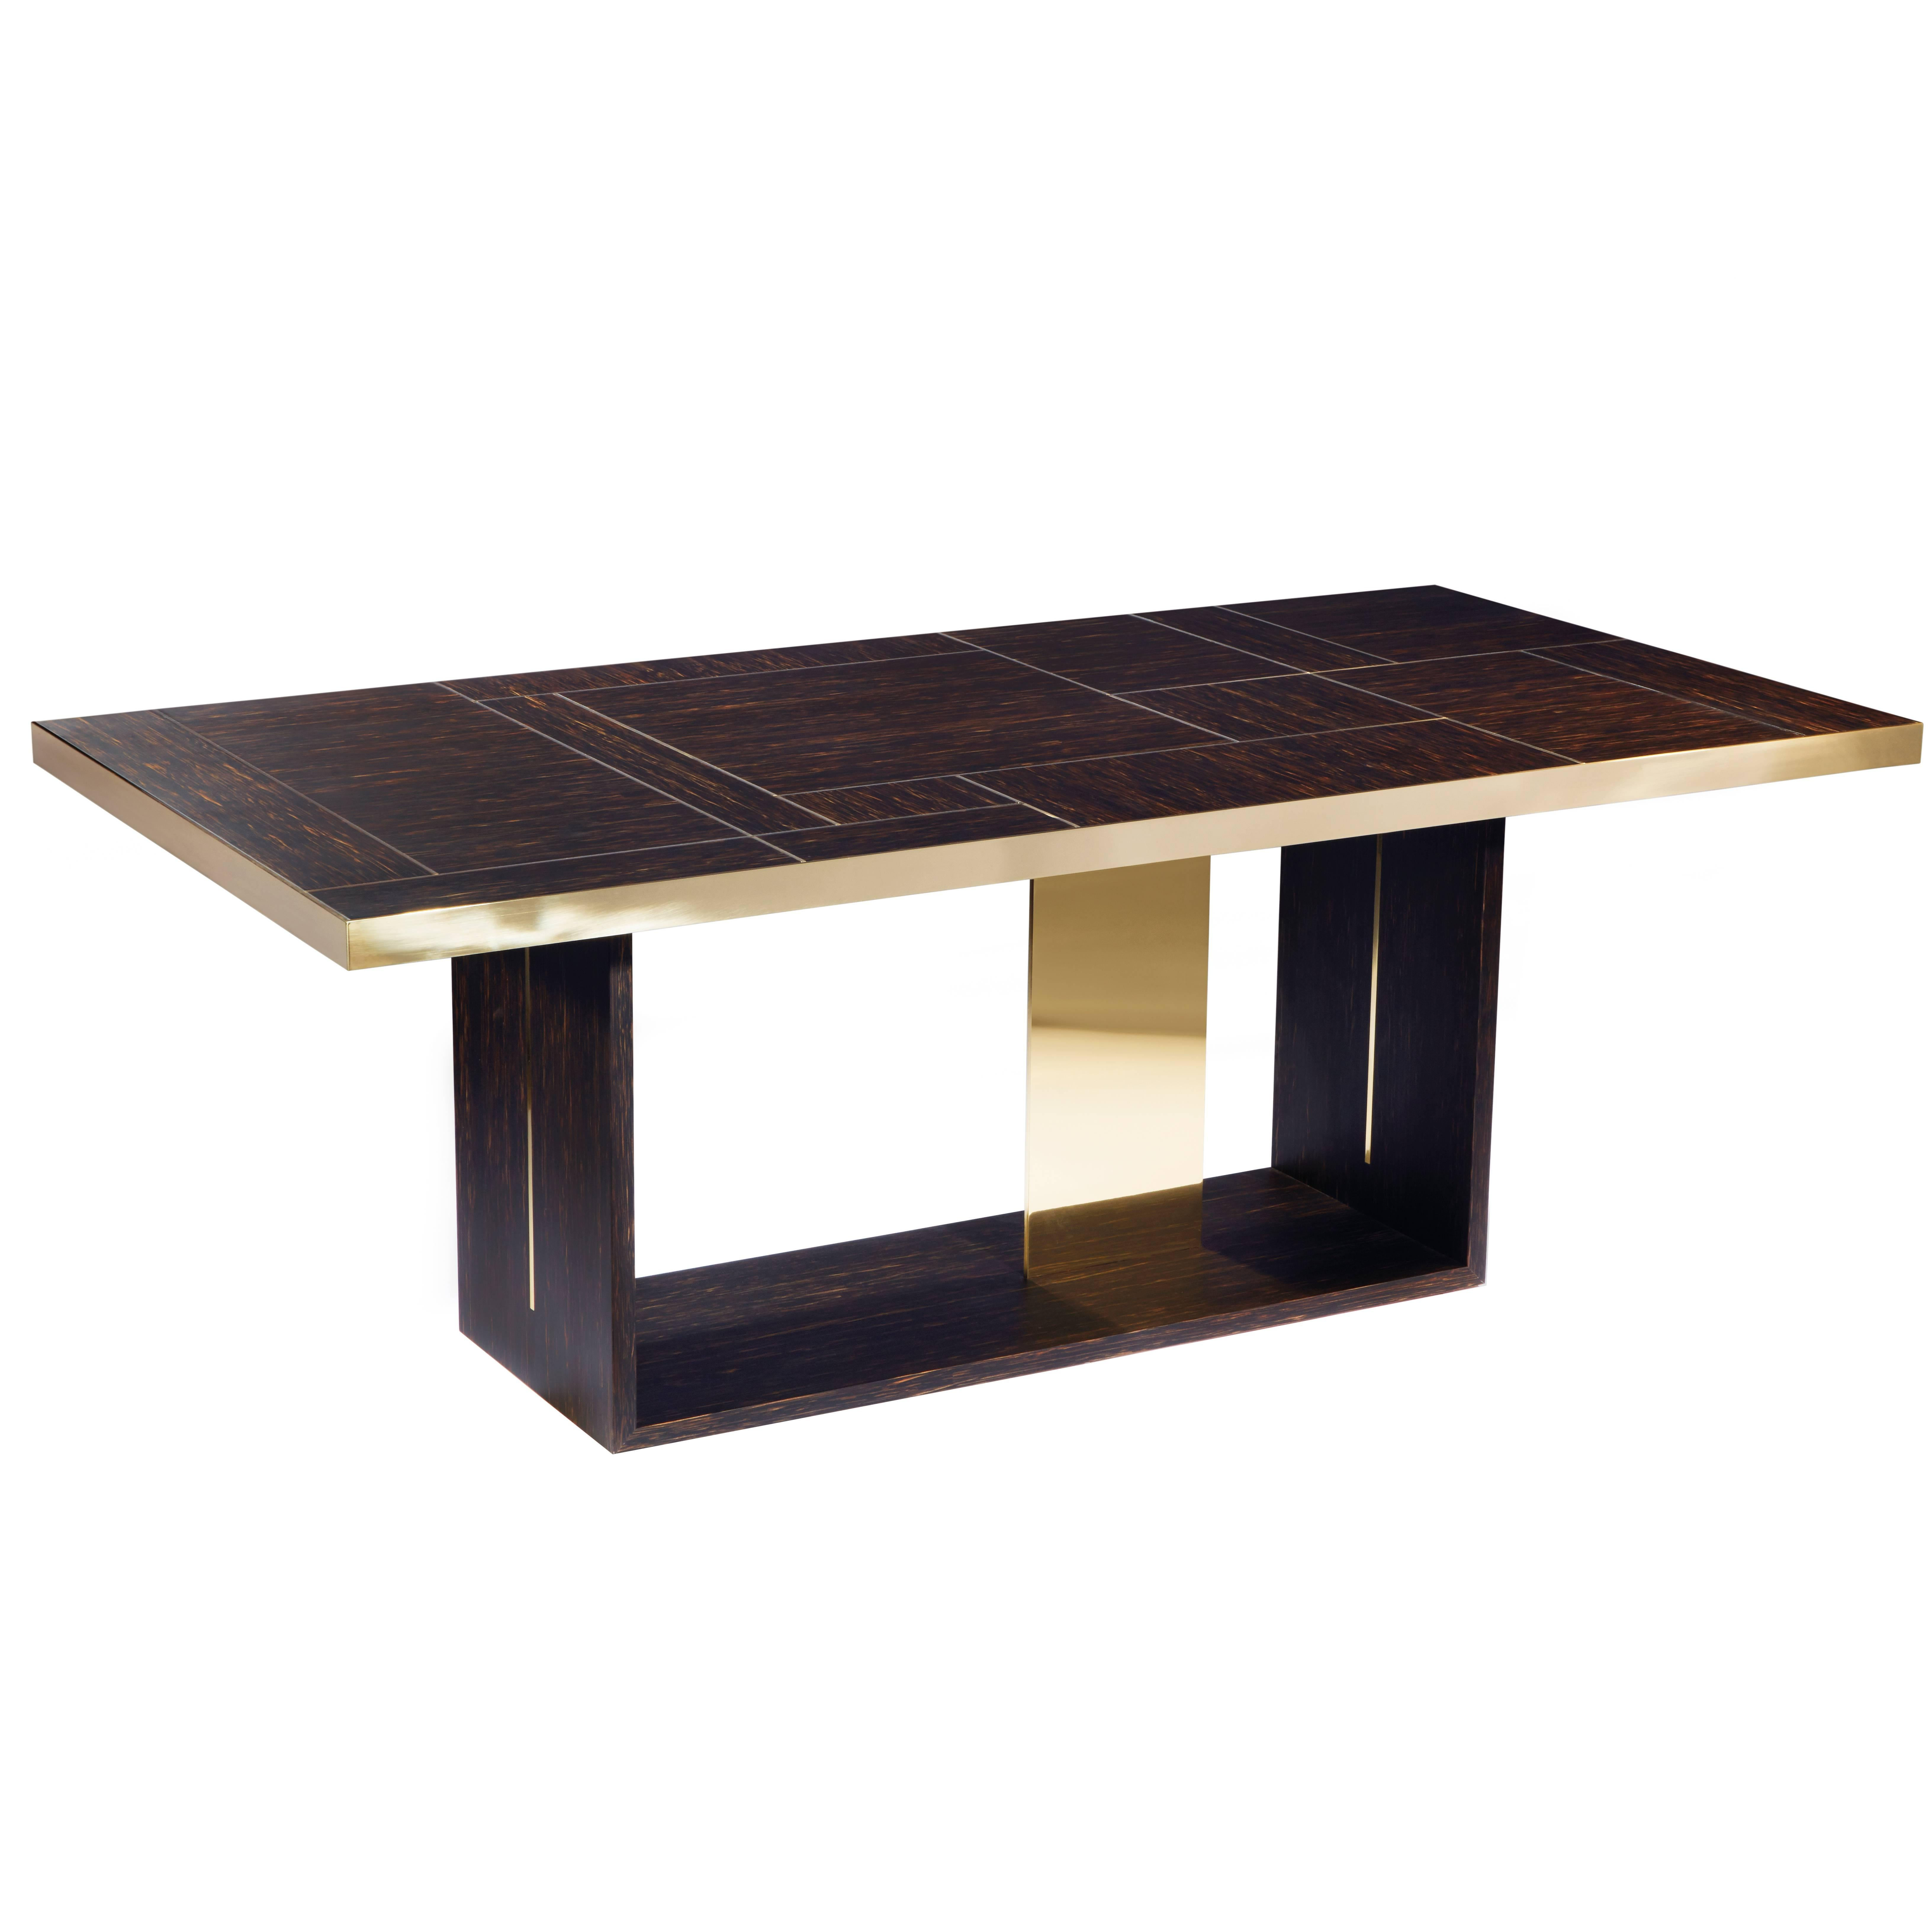 """Table """"Square"""" by Hervé Langlais for Galerie Negropontes"""